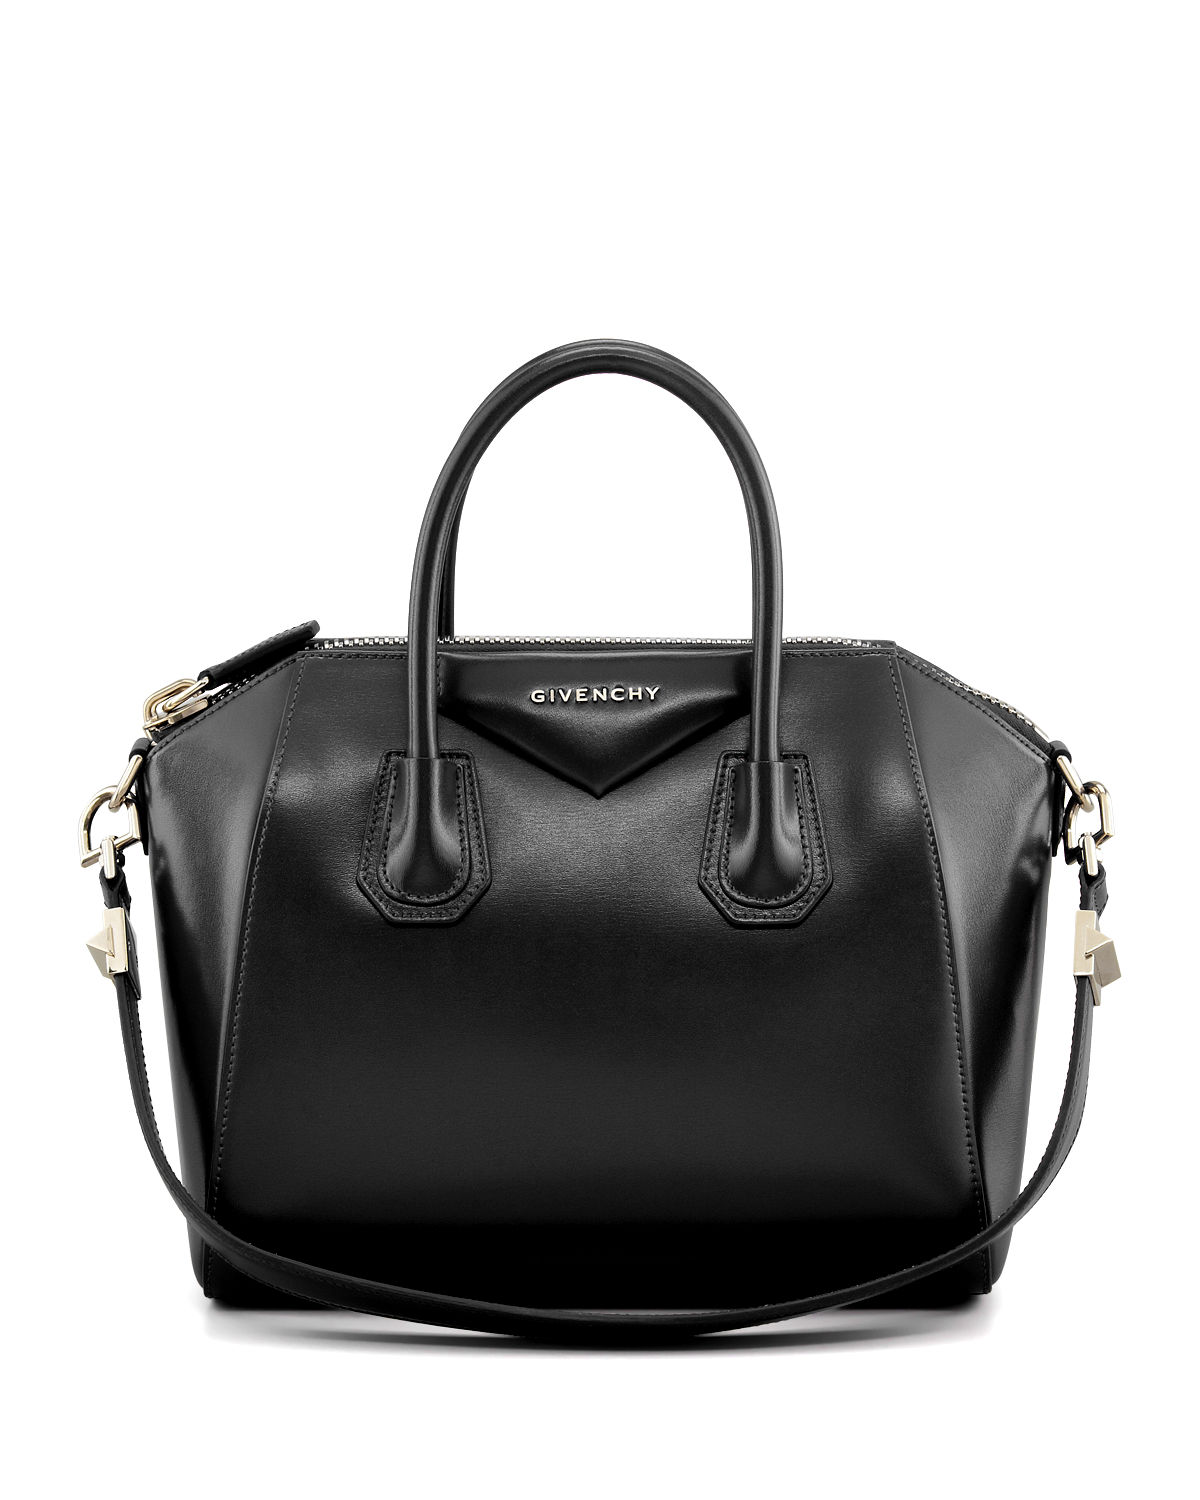 a5083599e9c1 Givenchy Antigona Small Leather Satchel Bag